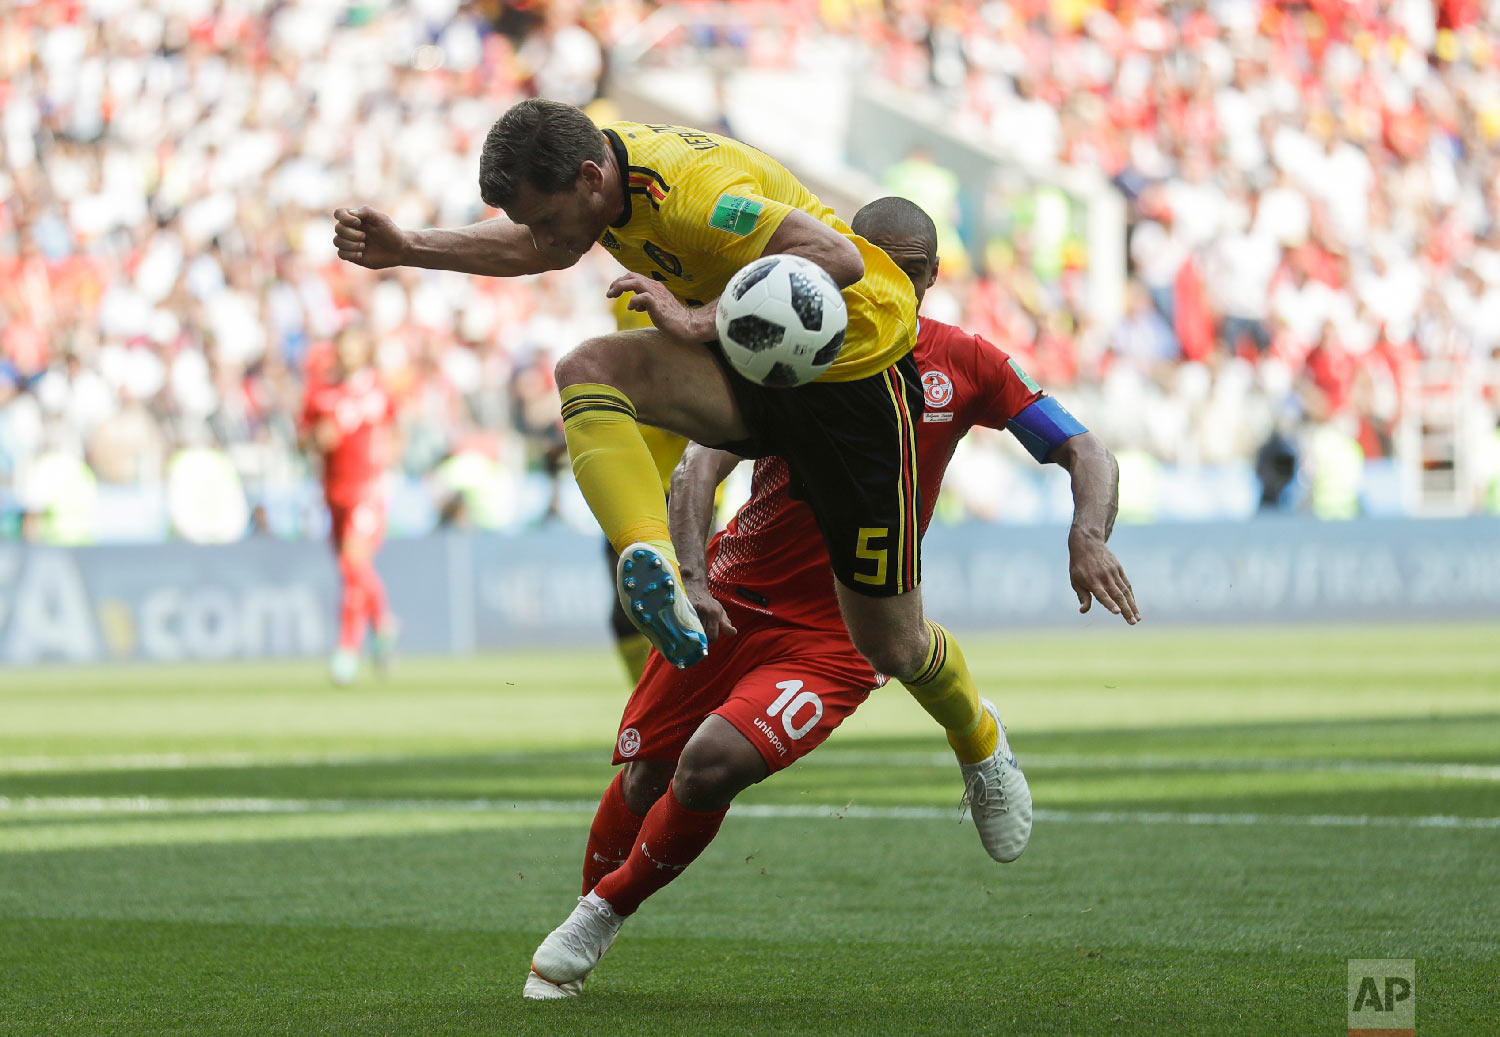 Belgium's Jan Vertonghen, top, and Tunisia's Wahbi Khazri challenge for the ball during the group G match between Belgium and Tunisia at the 2018 soccer World Cup in the Spartak Stadium in Moscow, Russia, Saturday, June 23, 2018. (AP Photo/Matthias Schrader)